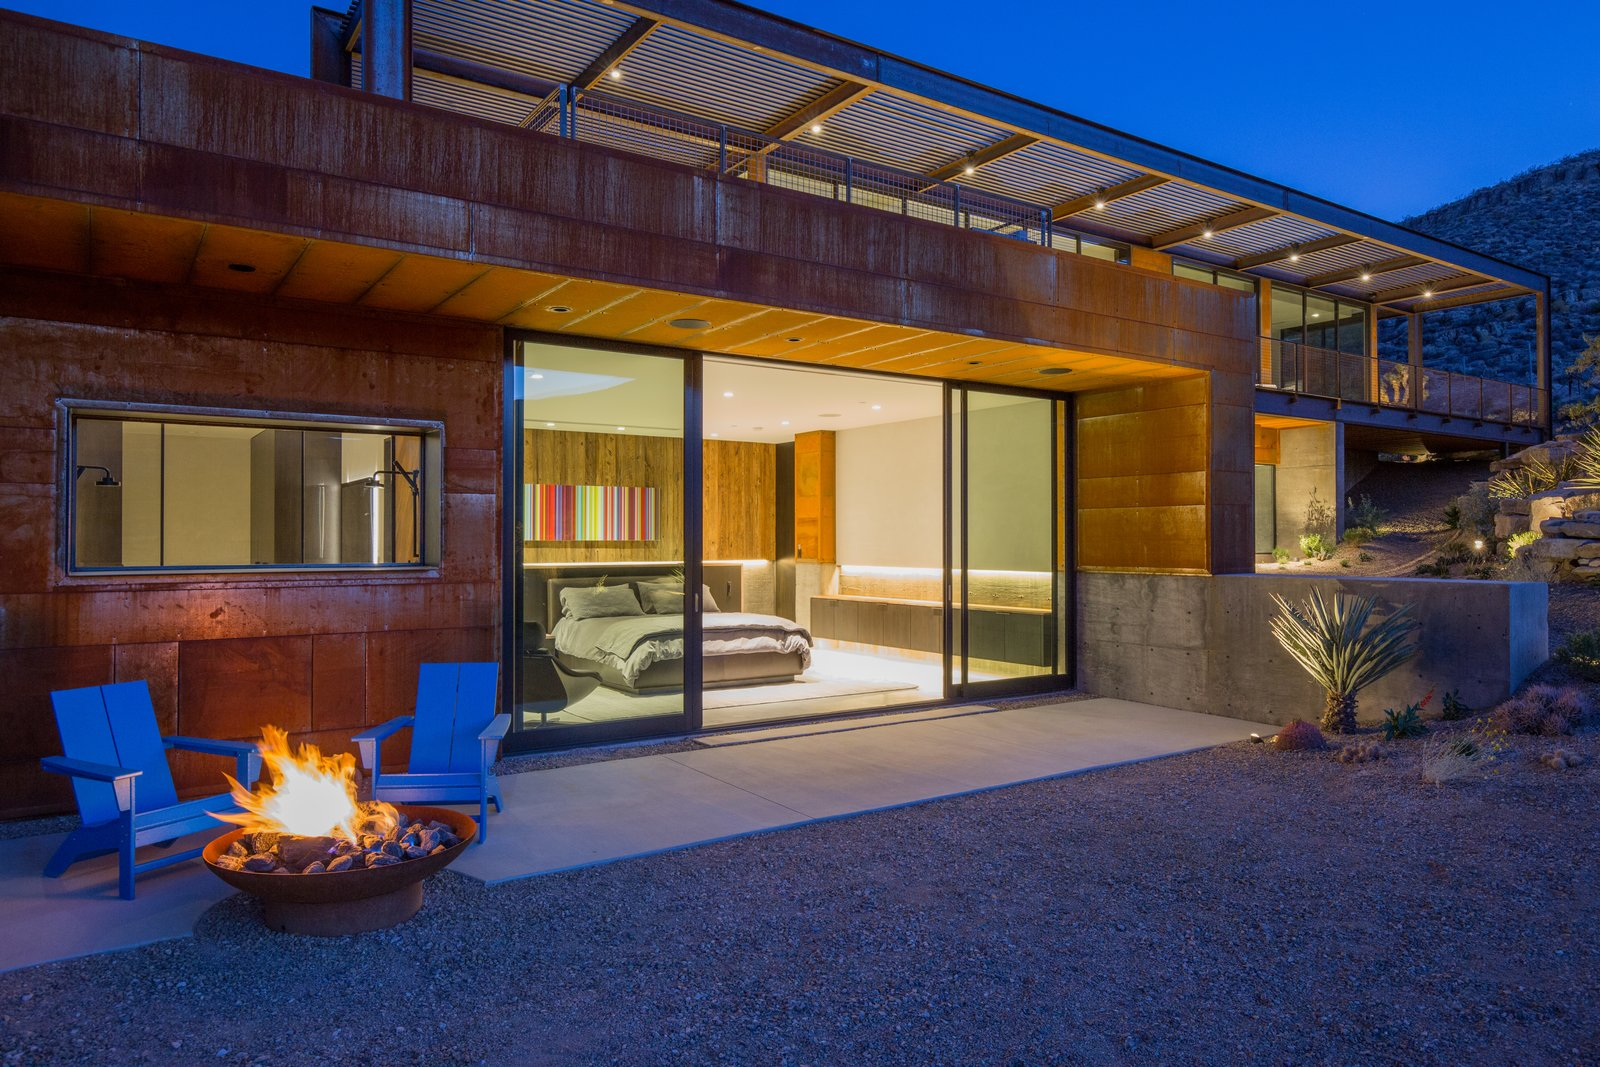 minMAX by Punch Architecture